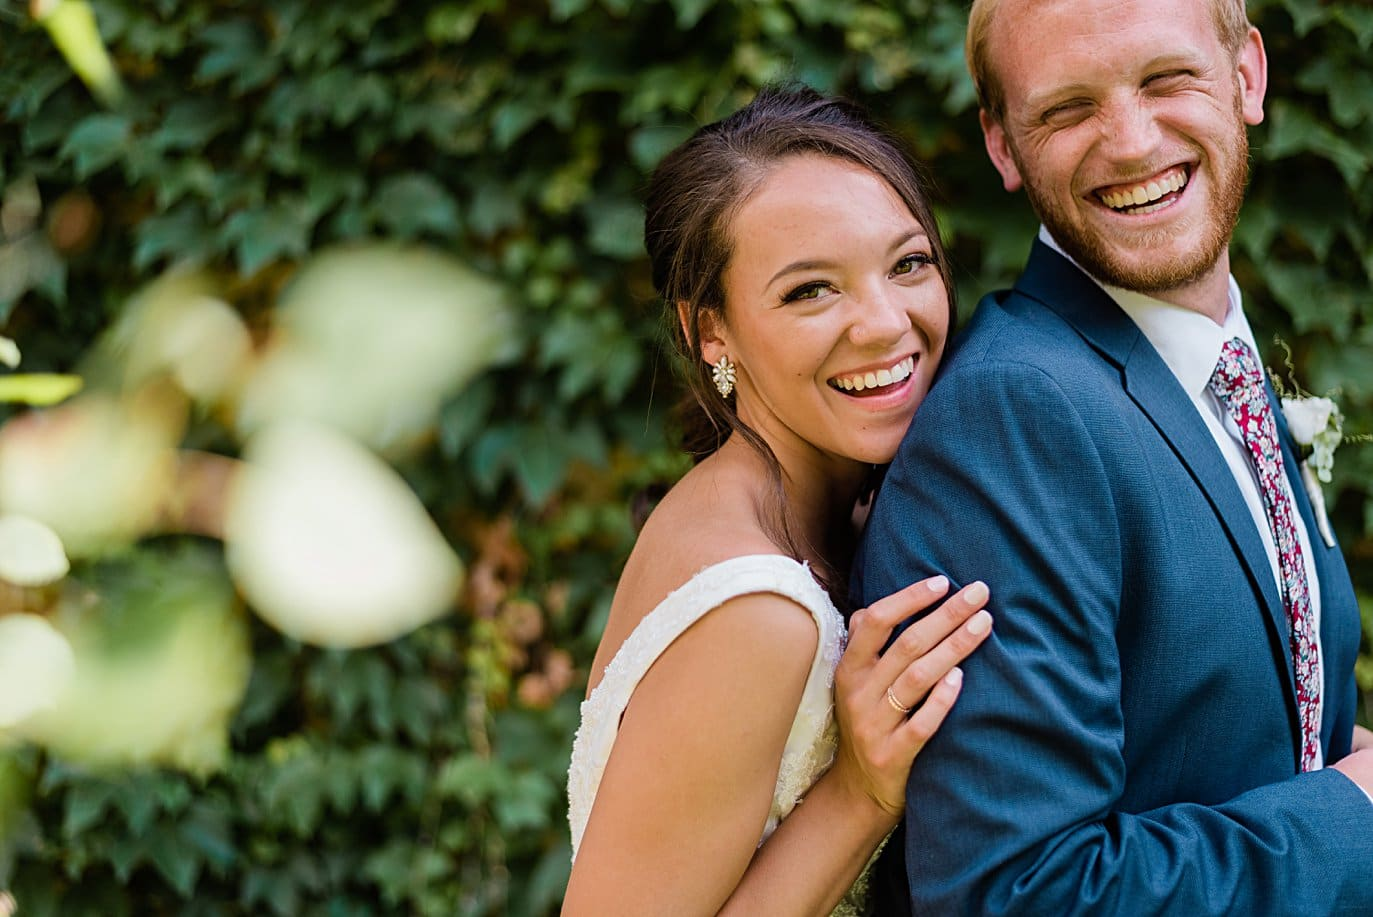 cute couples photos by ivy wall at Walker Fine Art Gallery Wedding by Fort Collins Wedding Photographer Jennie Crate